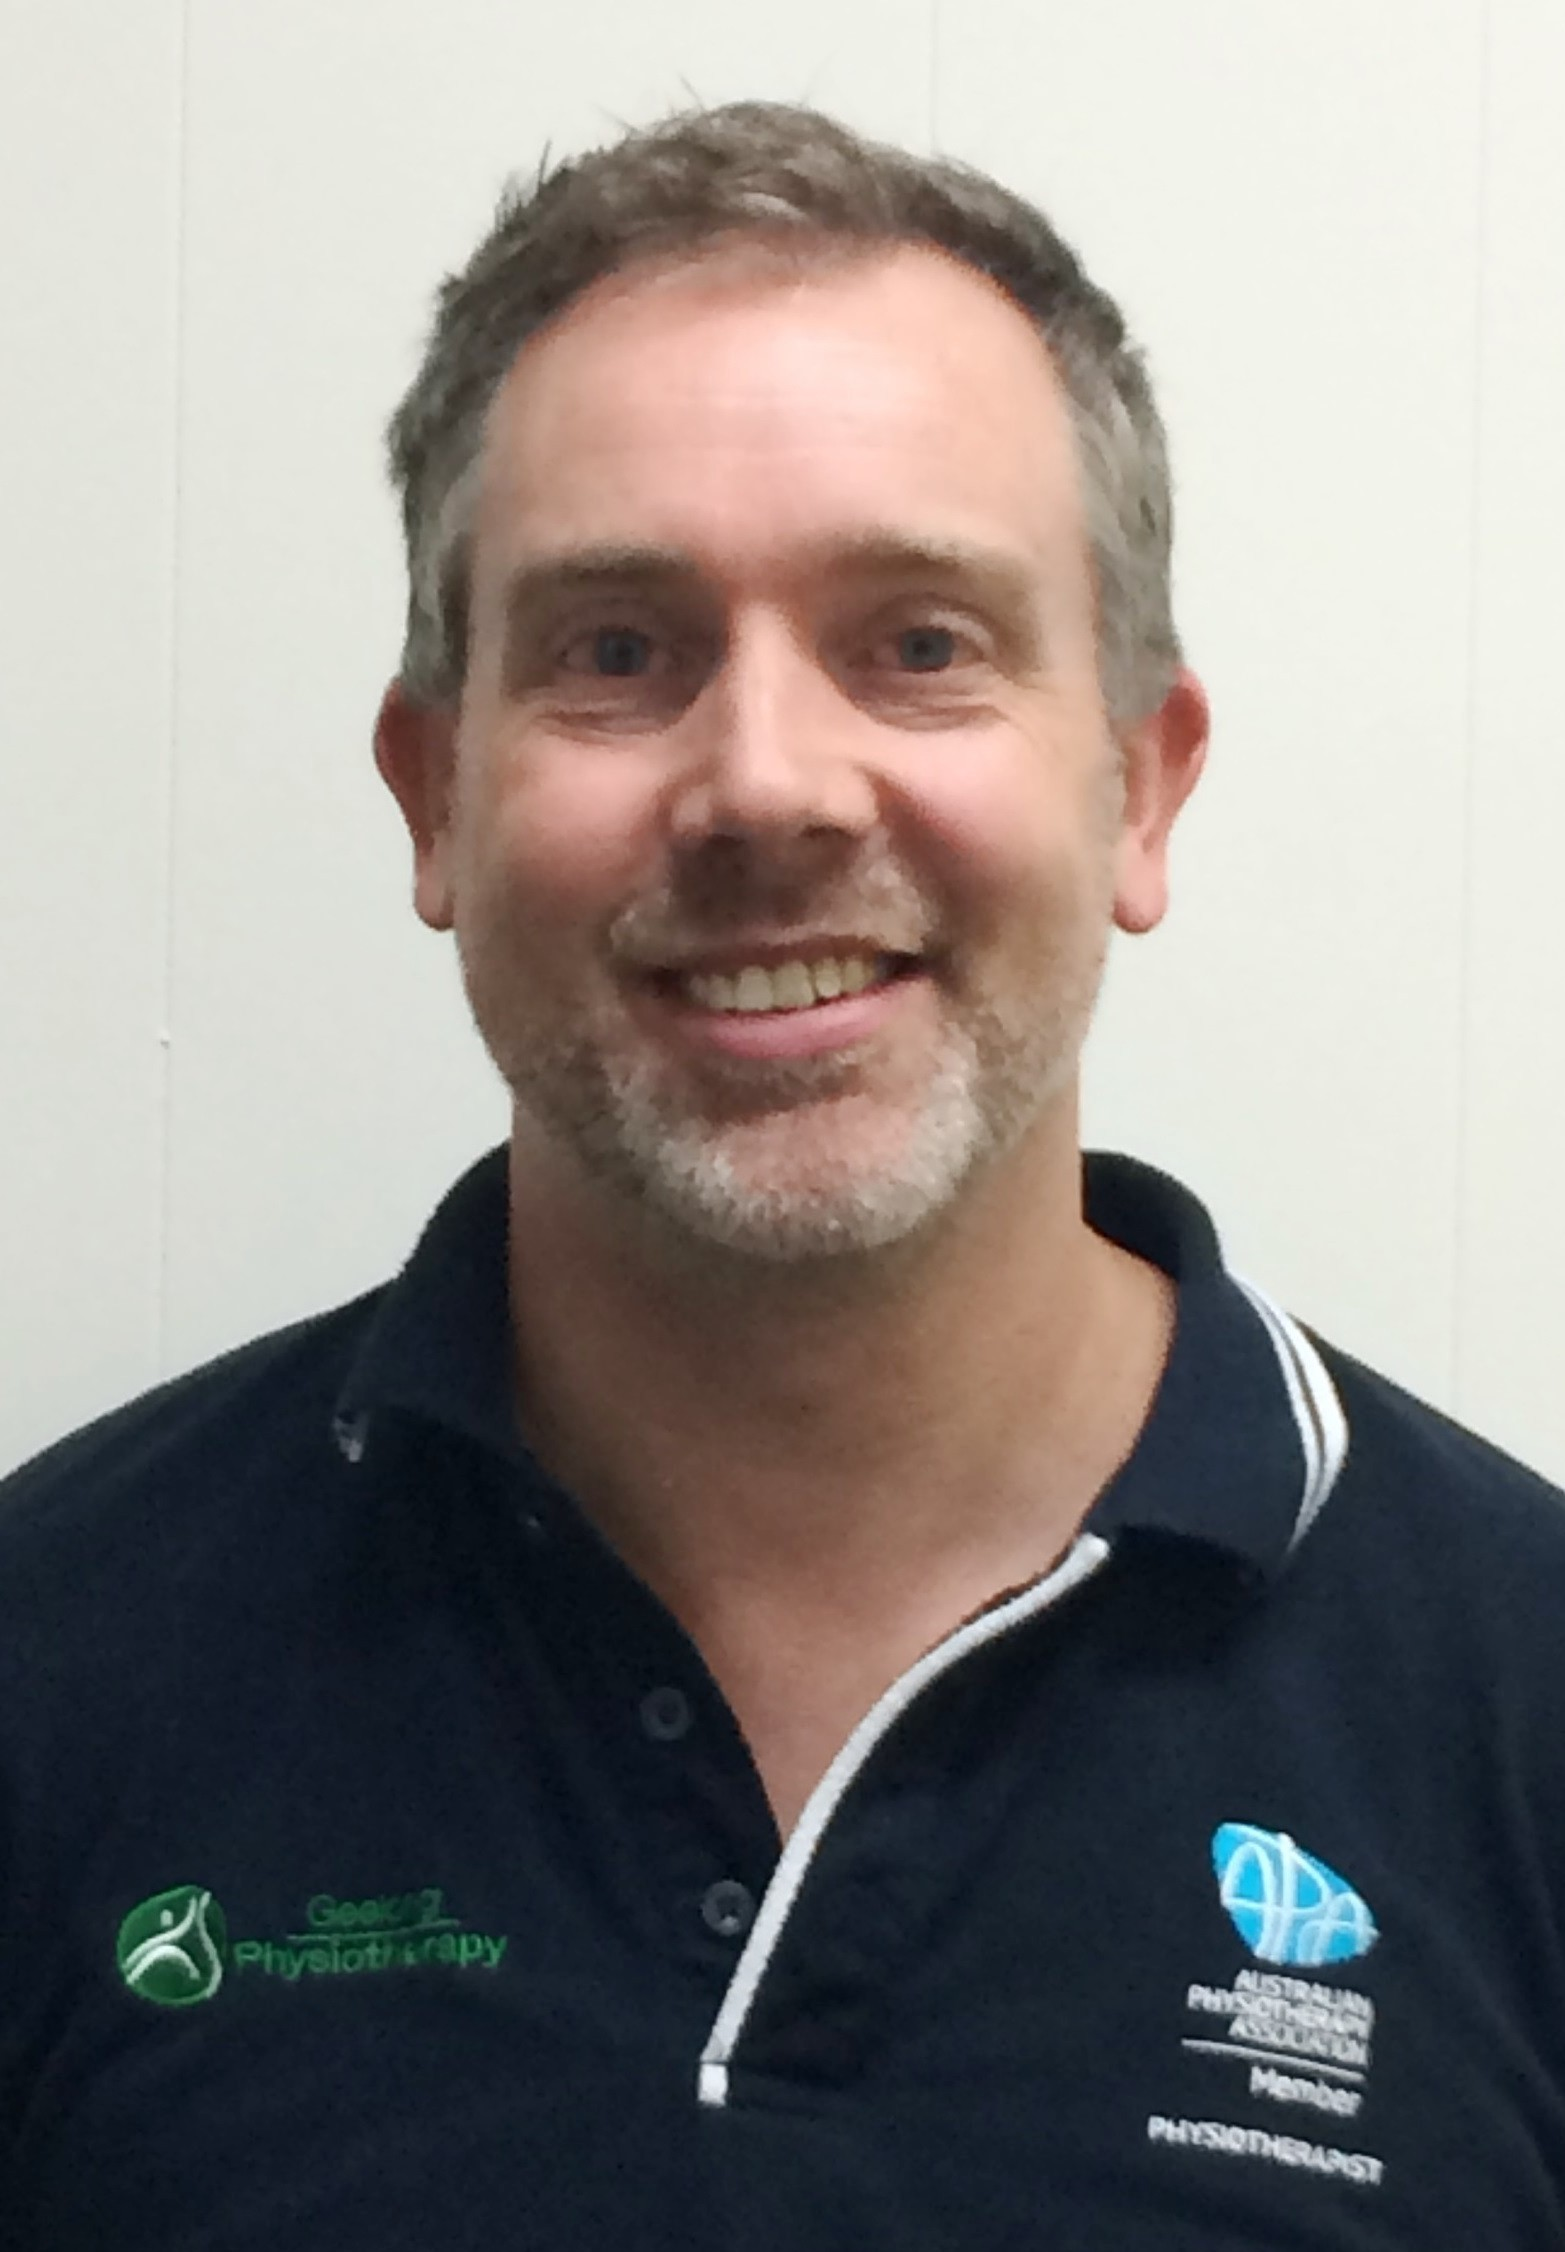 JAMES NELSON from Geelong Physiotherapy